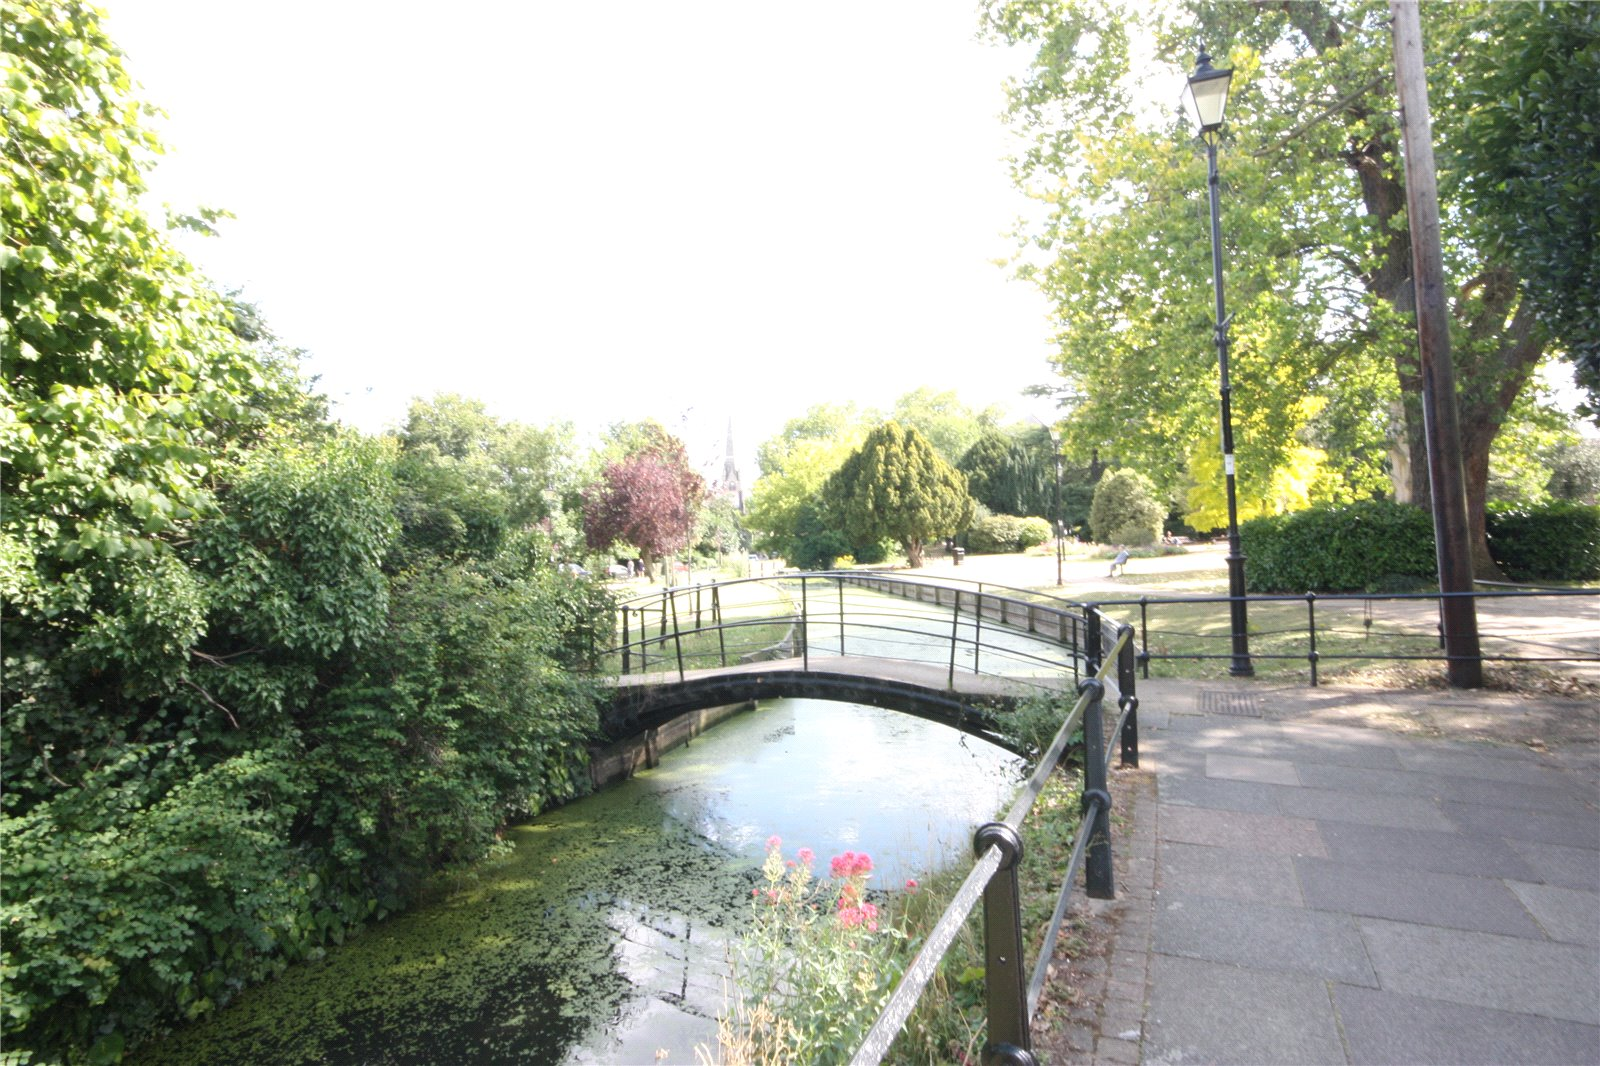 River View, Enfield, Middlesex EN2